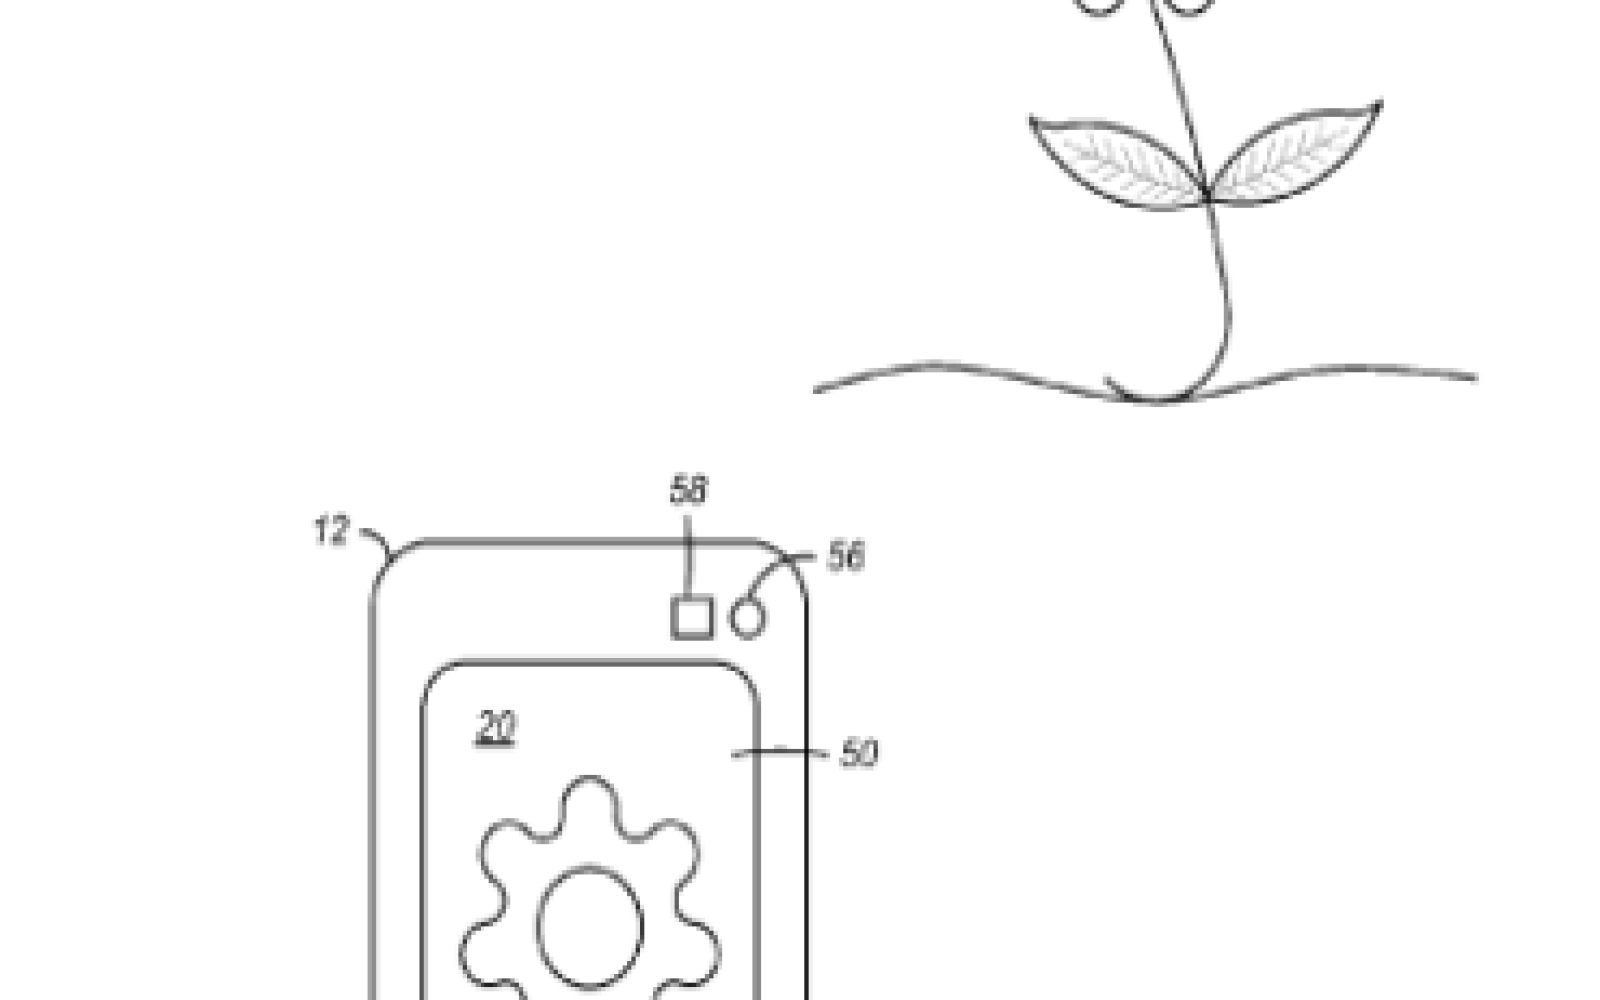 Google's latest camera patent features GPS tech that auto-adjusts settings to weather